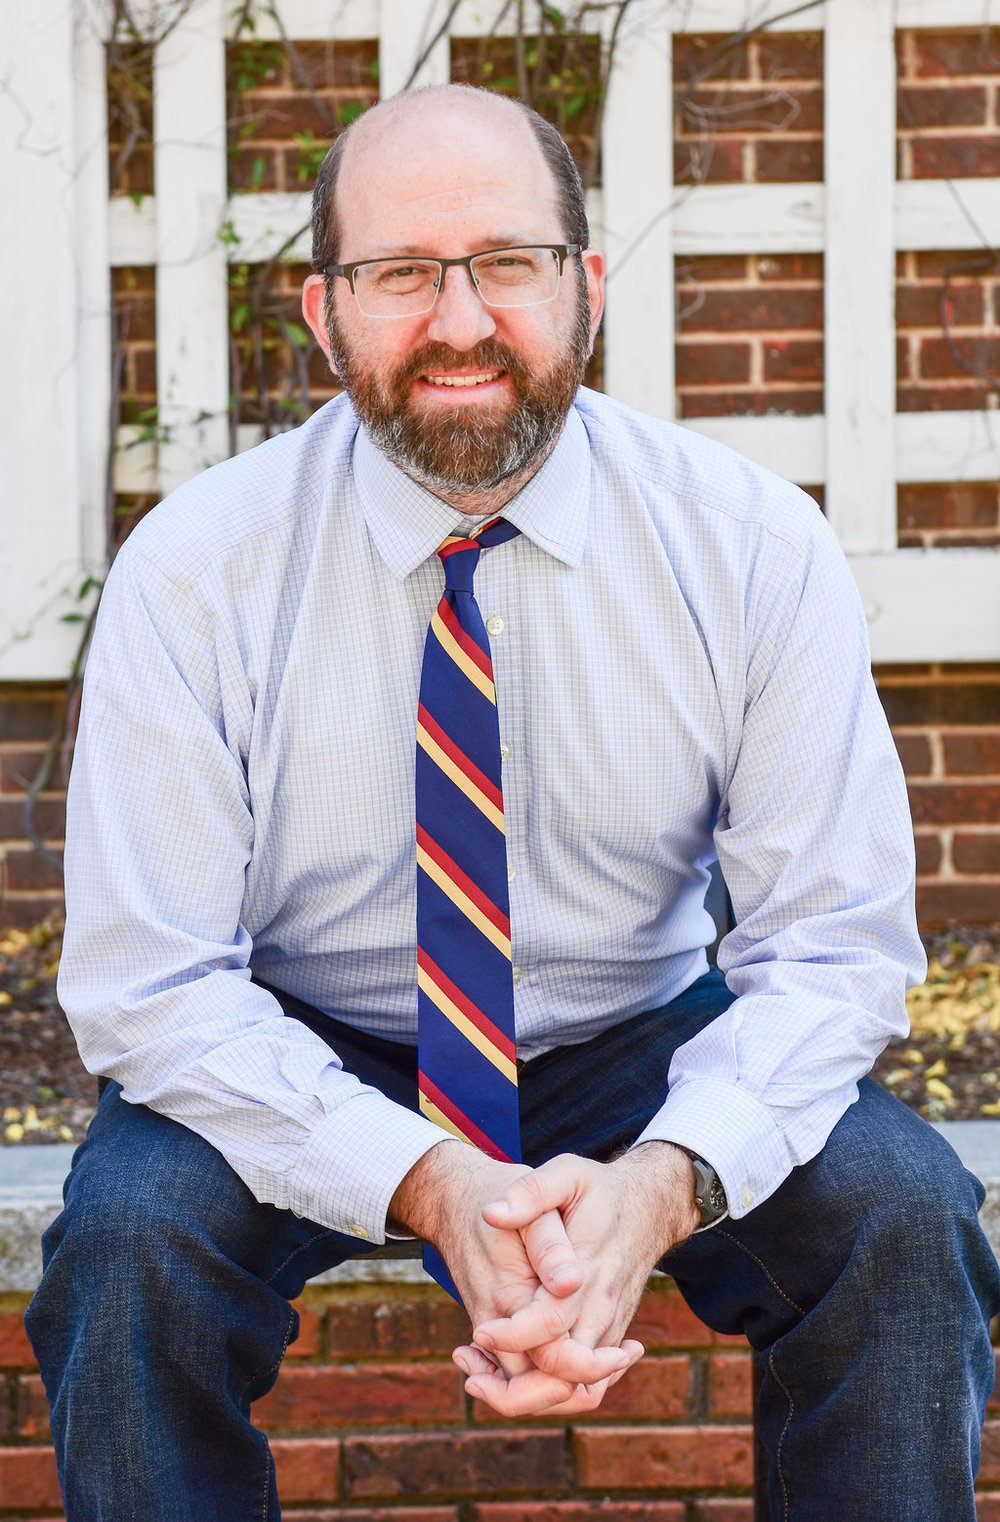 Meet Adam - Alabama Educator.Award-winning historian.Father of Two.Candidate for the Alabama State Board of Education.Adam Jortner comes from a family of teachers, and he knows that teaching is one of the hardest and most important jobs, because teachers serve the future of our country.Adam has been teaching history at Auburn University for the better part of a decade. He's taught classes on the history of the U.S., Christianity, and Thomas Jefferson. He has published two books on religious liberty.Before coming to Alabama, Adam worked with national educational companies, including Scholastic and Kaplan.He was also part of the writing team for the TV show Where in Time is Carmen Sandiego? He lives in Auburn with his wife, Emily, and their two sons, Charlie and Sam. Learn More